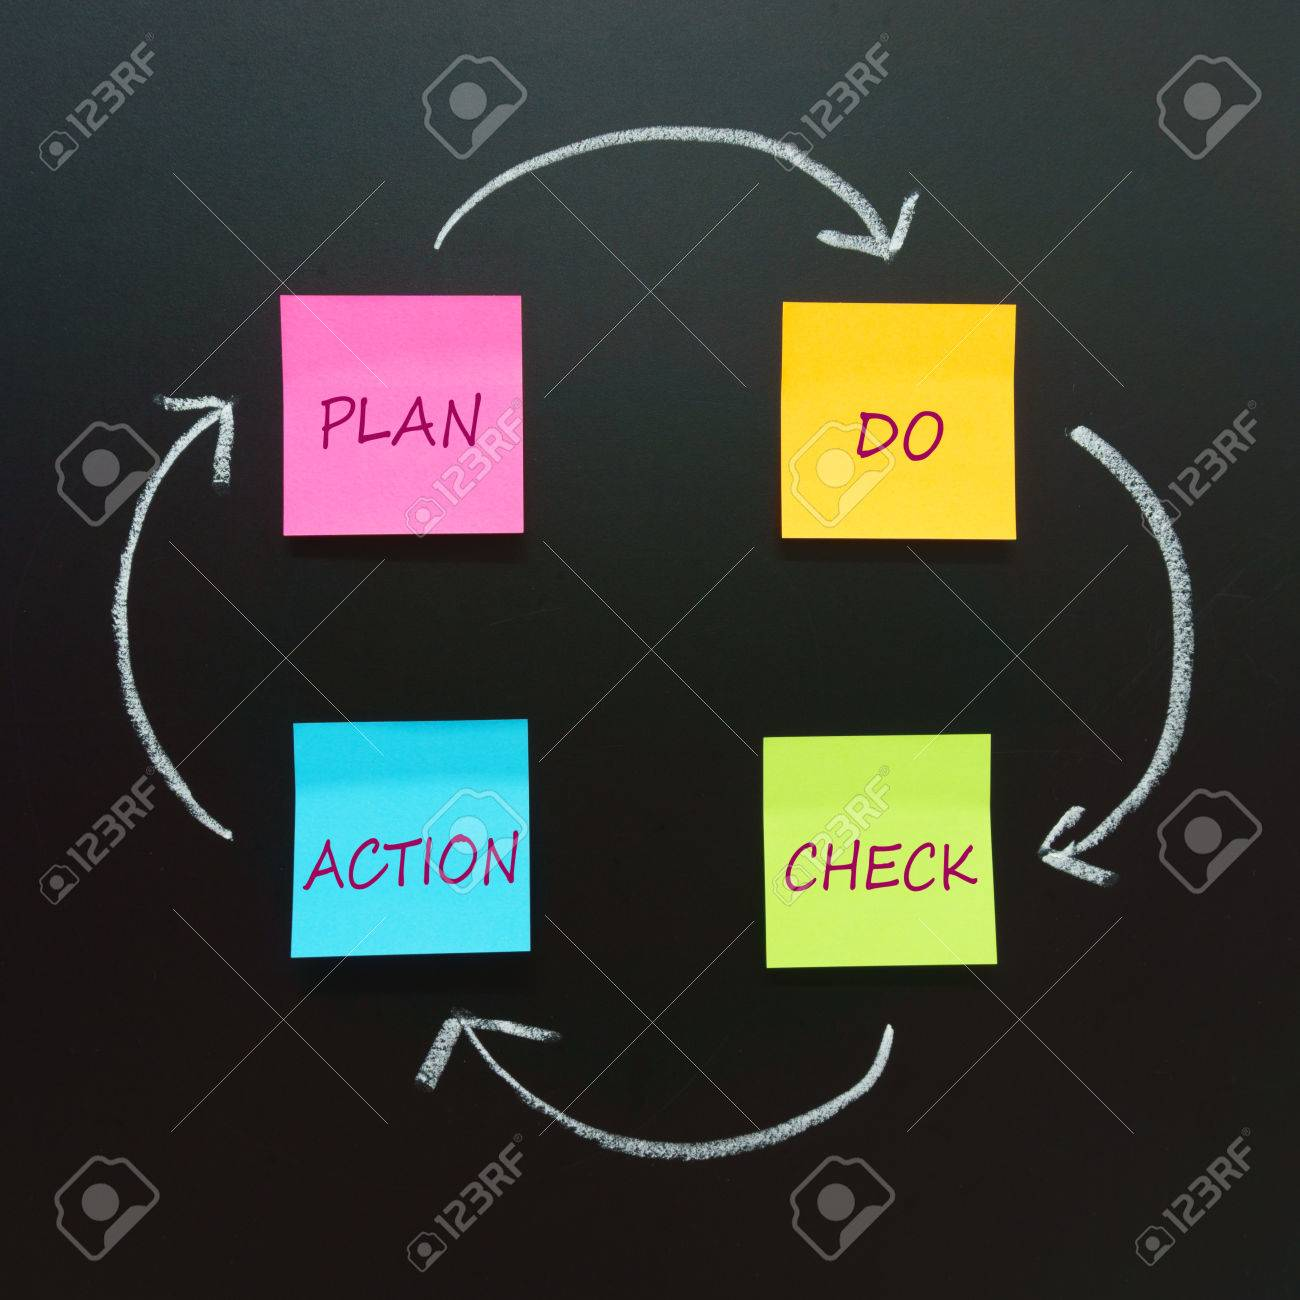 hight resolution of pdca circle plan do check action four steps management method